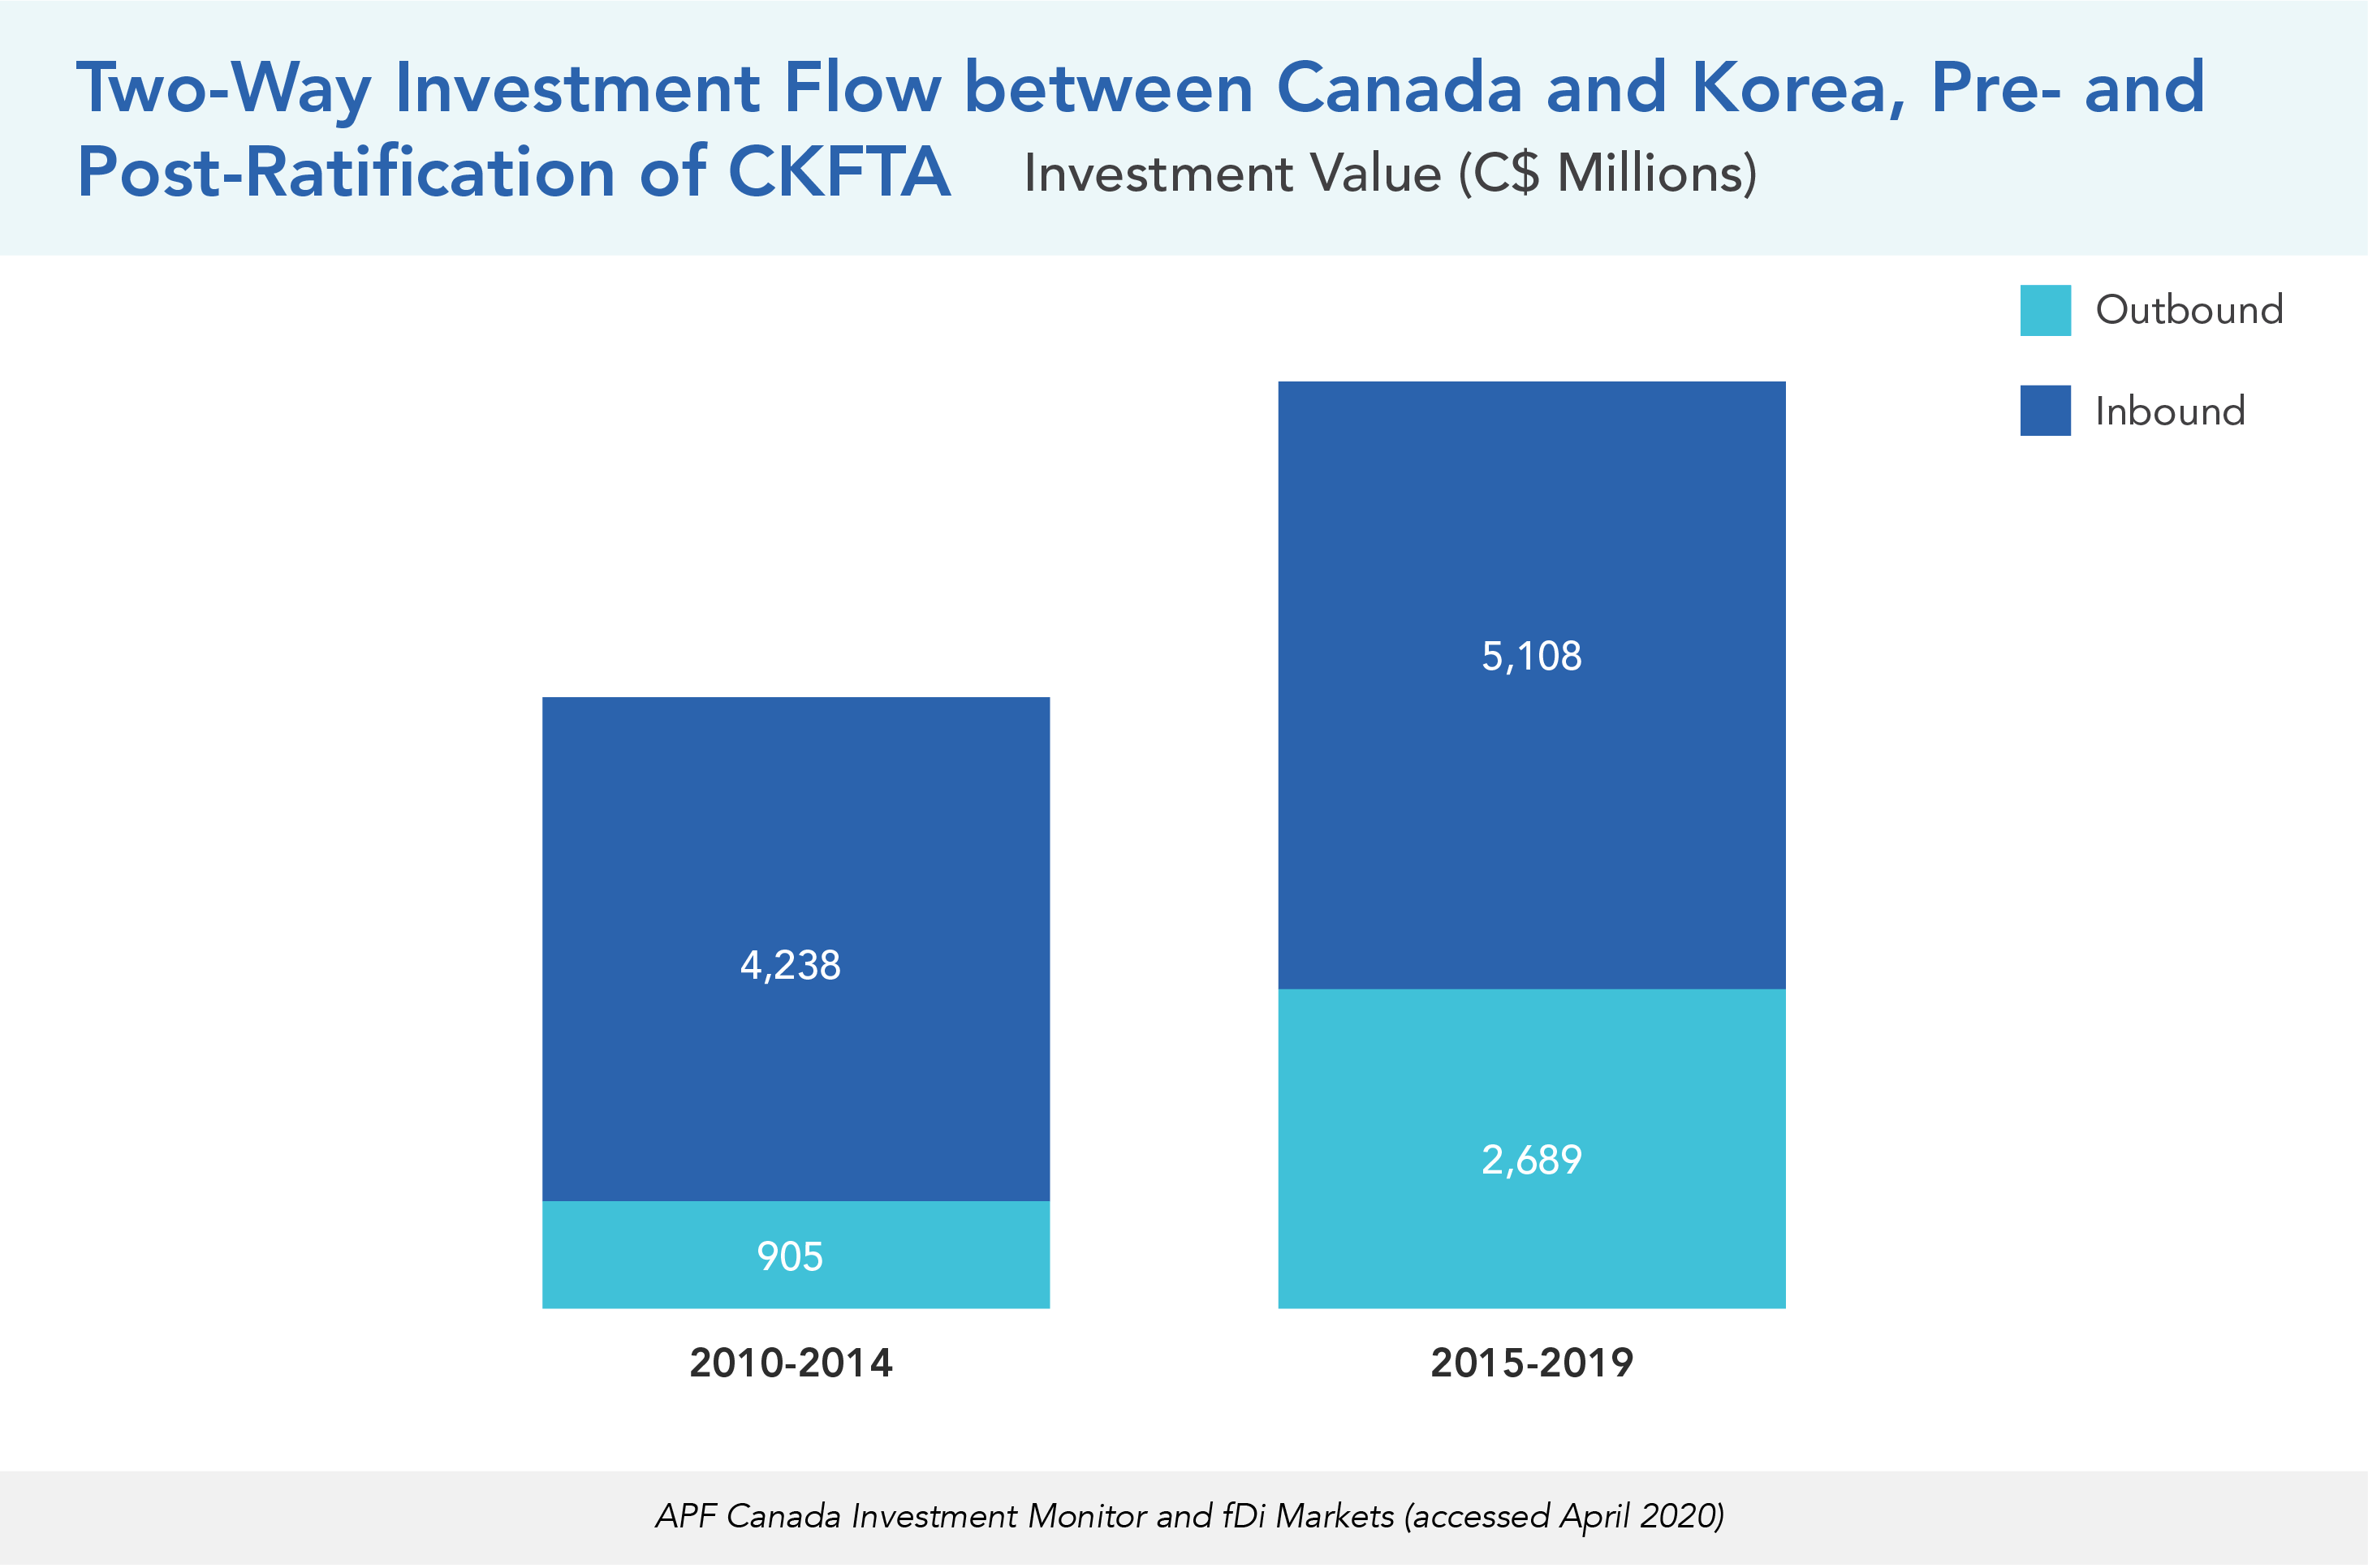 Two-Way Investment Flow between Canada and Korea, Pre- and Post-Ratification of CKFTA